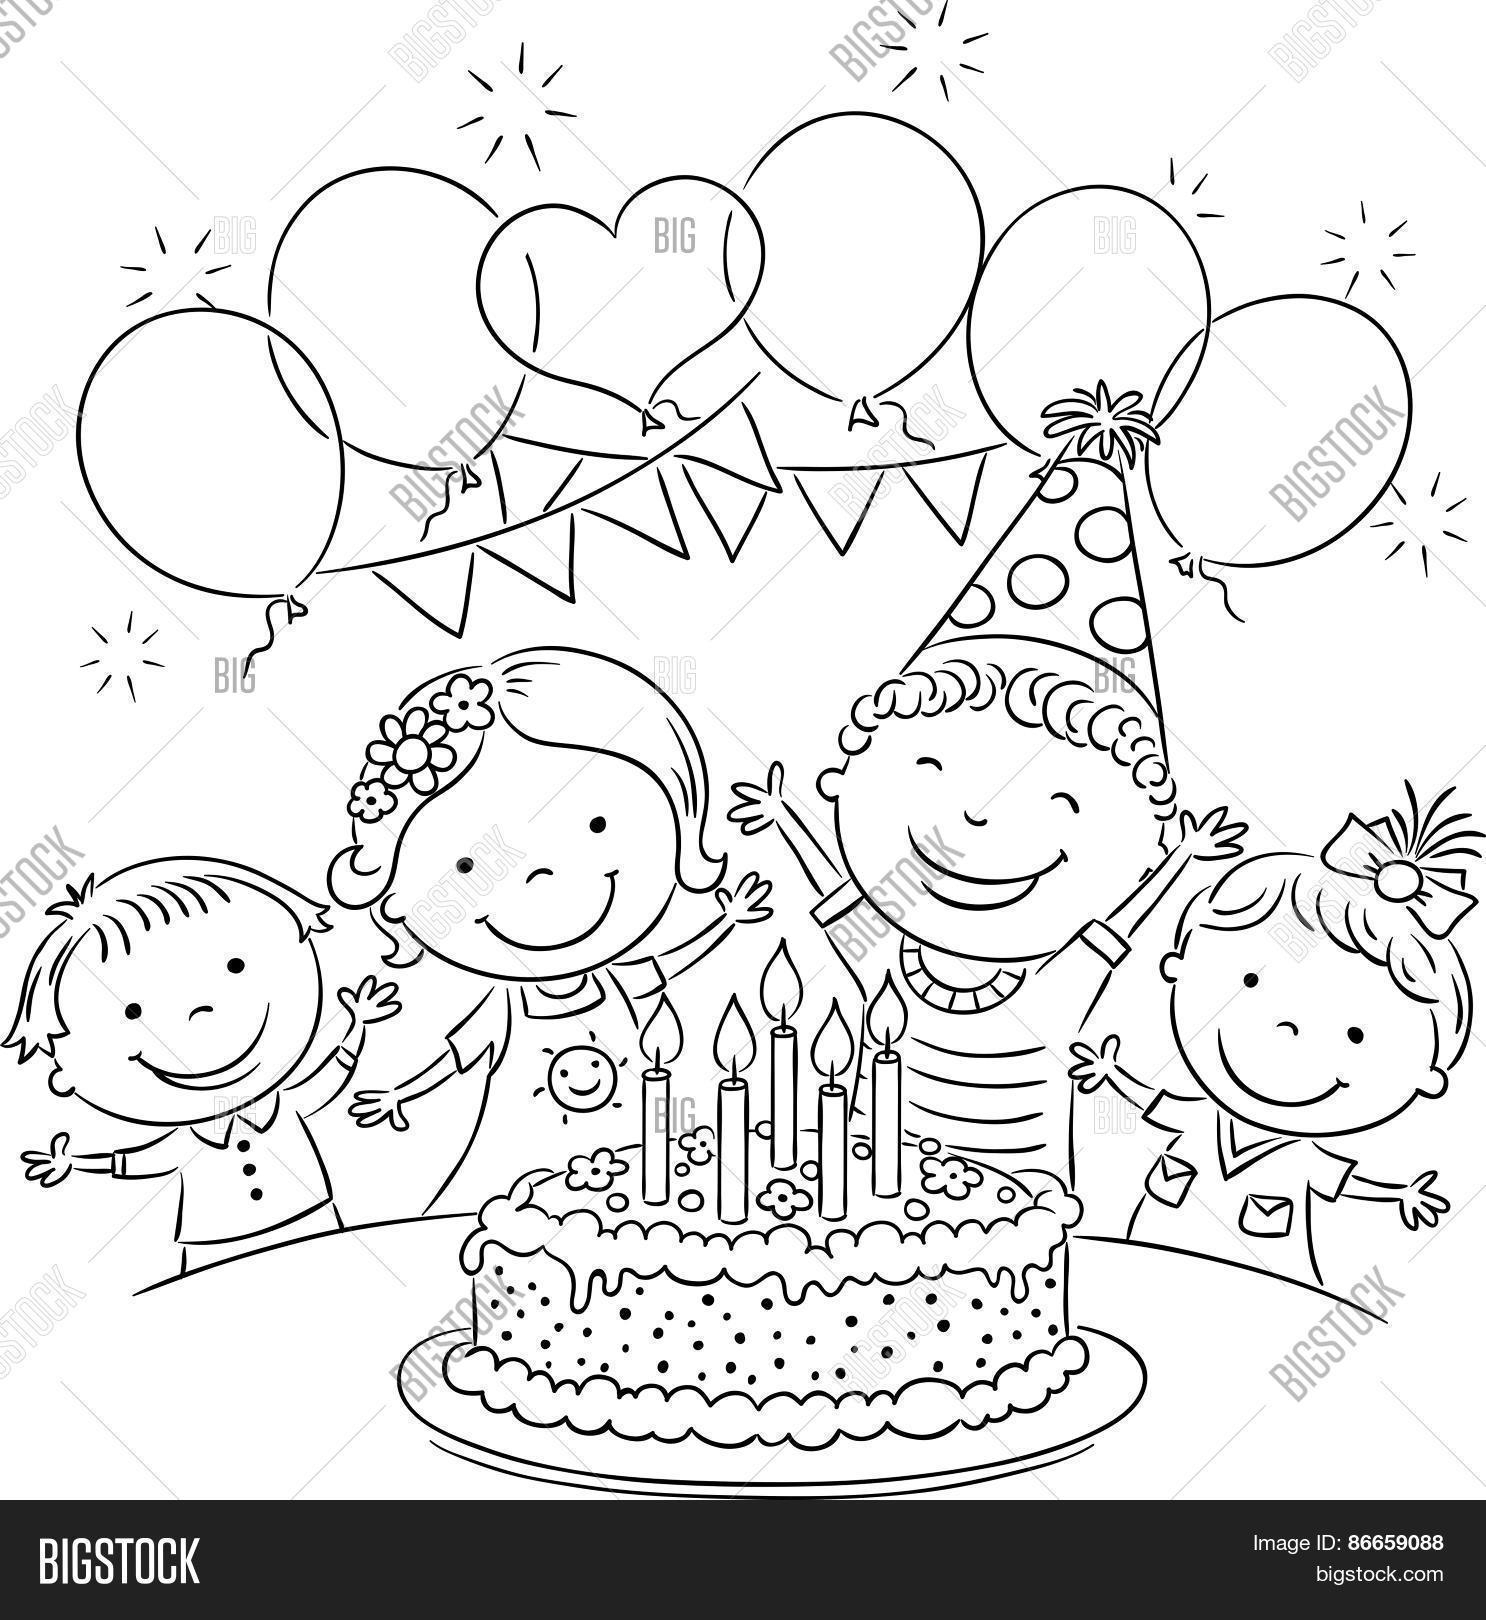 birthday party scene for drawing ; birthday-party-scene-for-drawing-kids-birthday-party-outline-stock-vector-stock-photos-bigstock-1